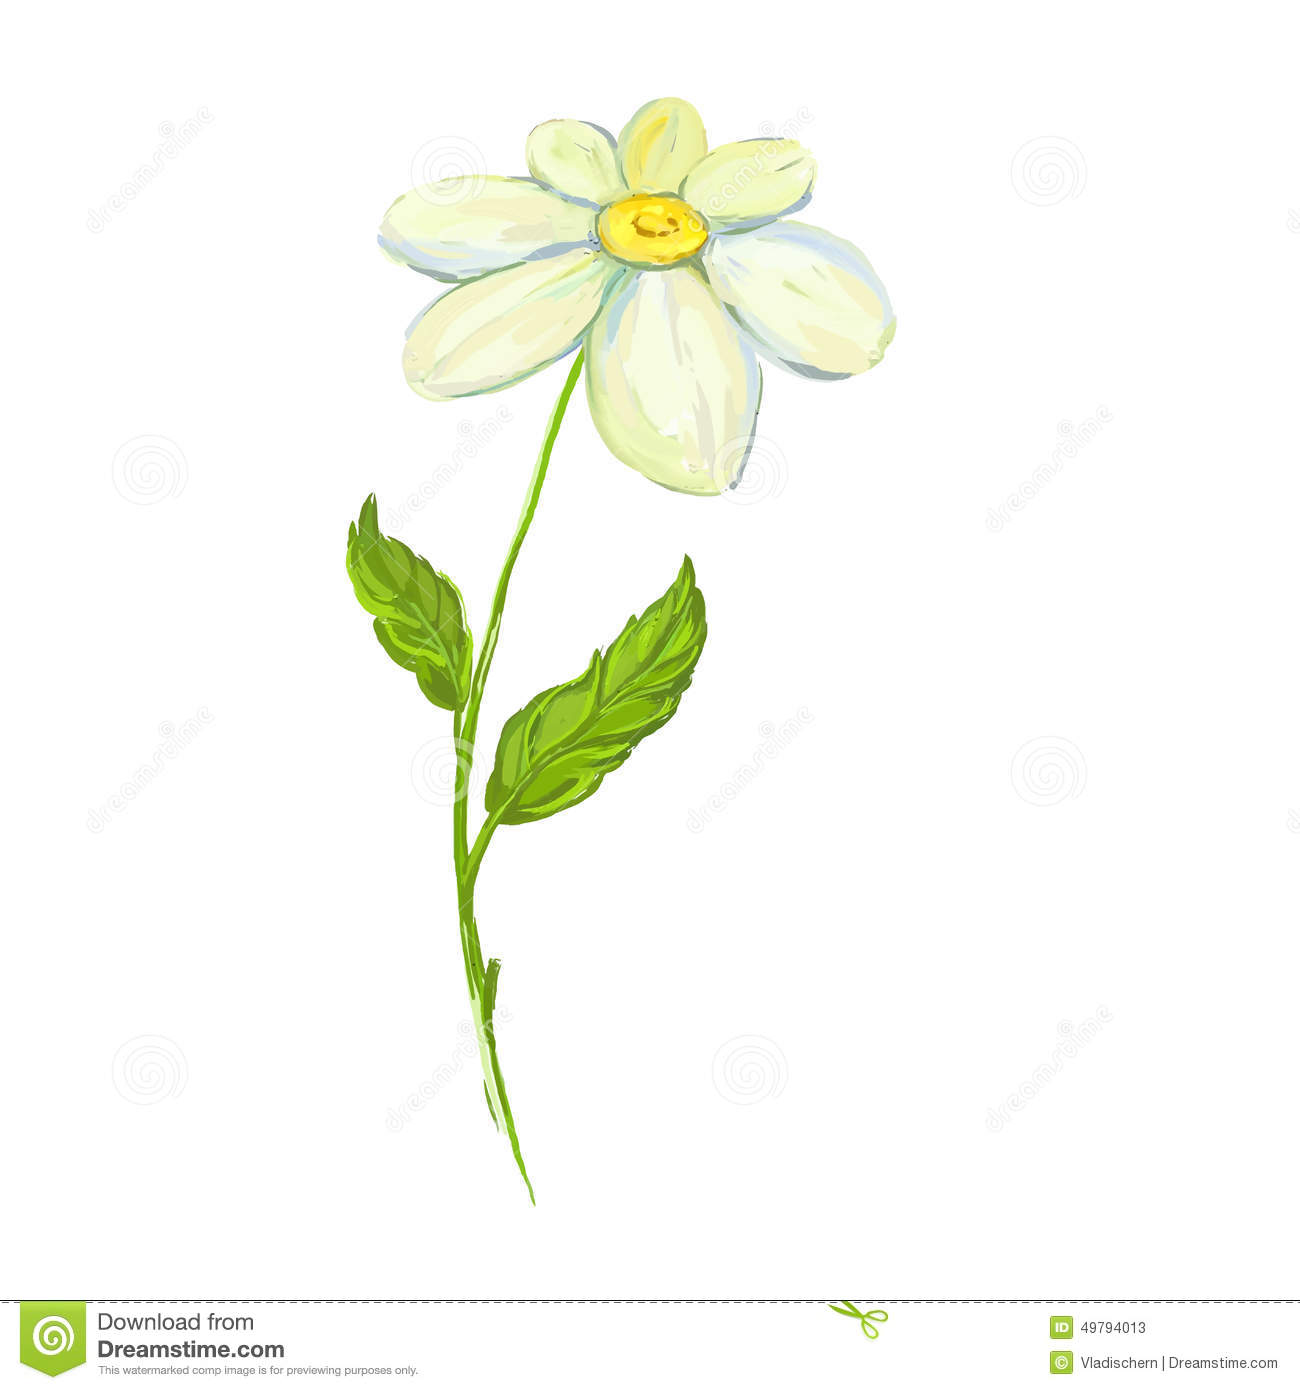 Daisy Vector Illustration Hand Drawn Painted Stock Vector - Image ...